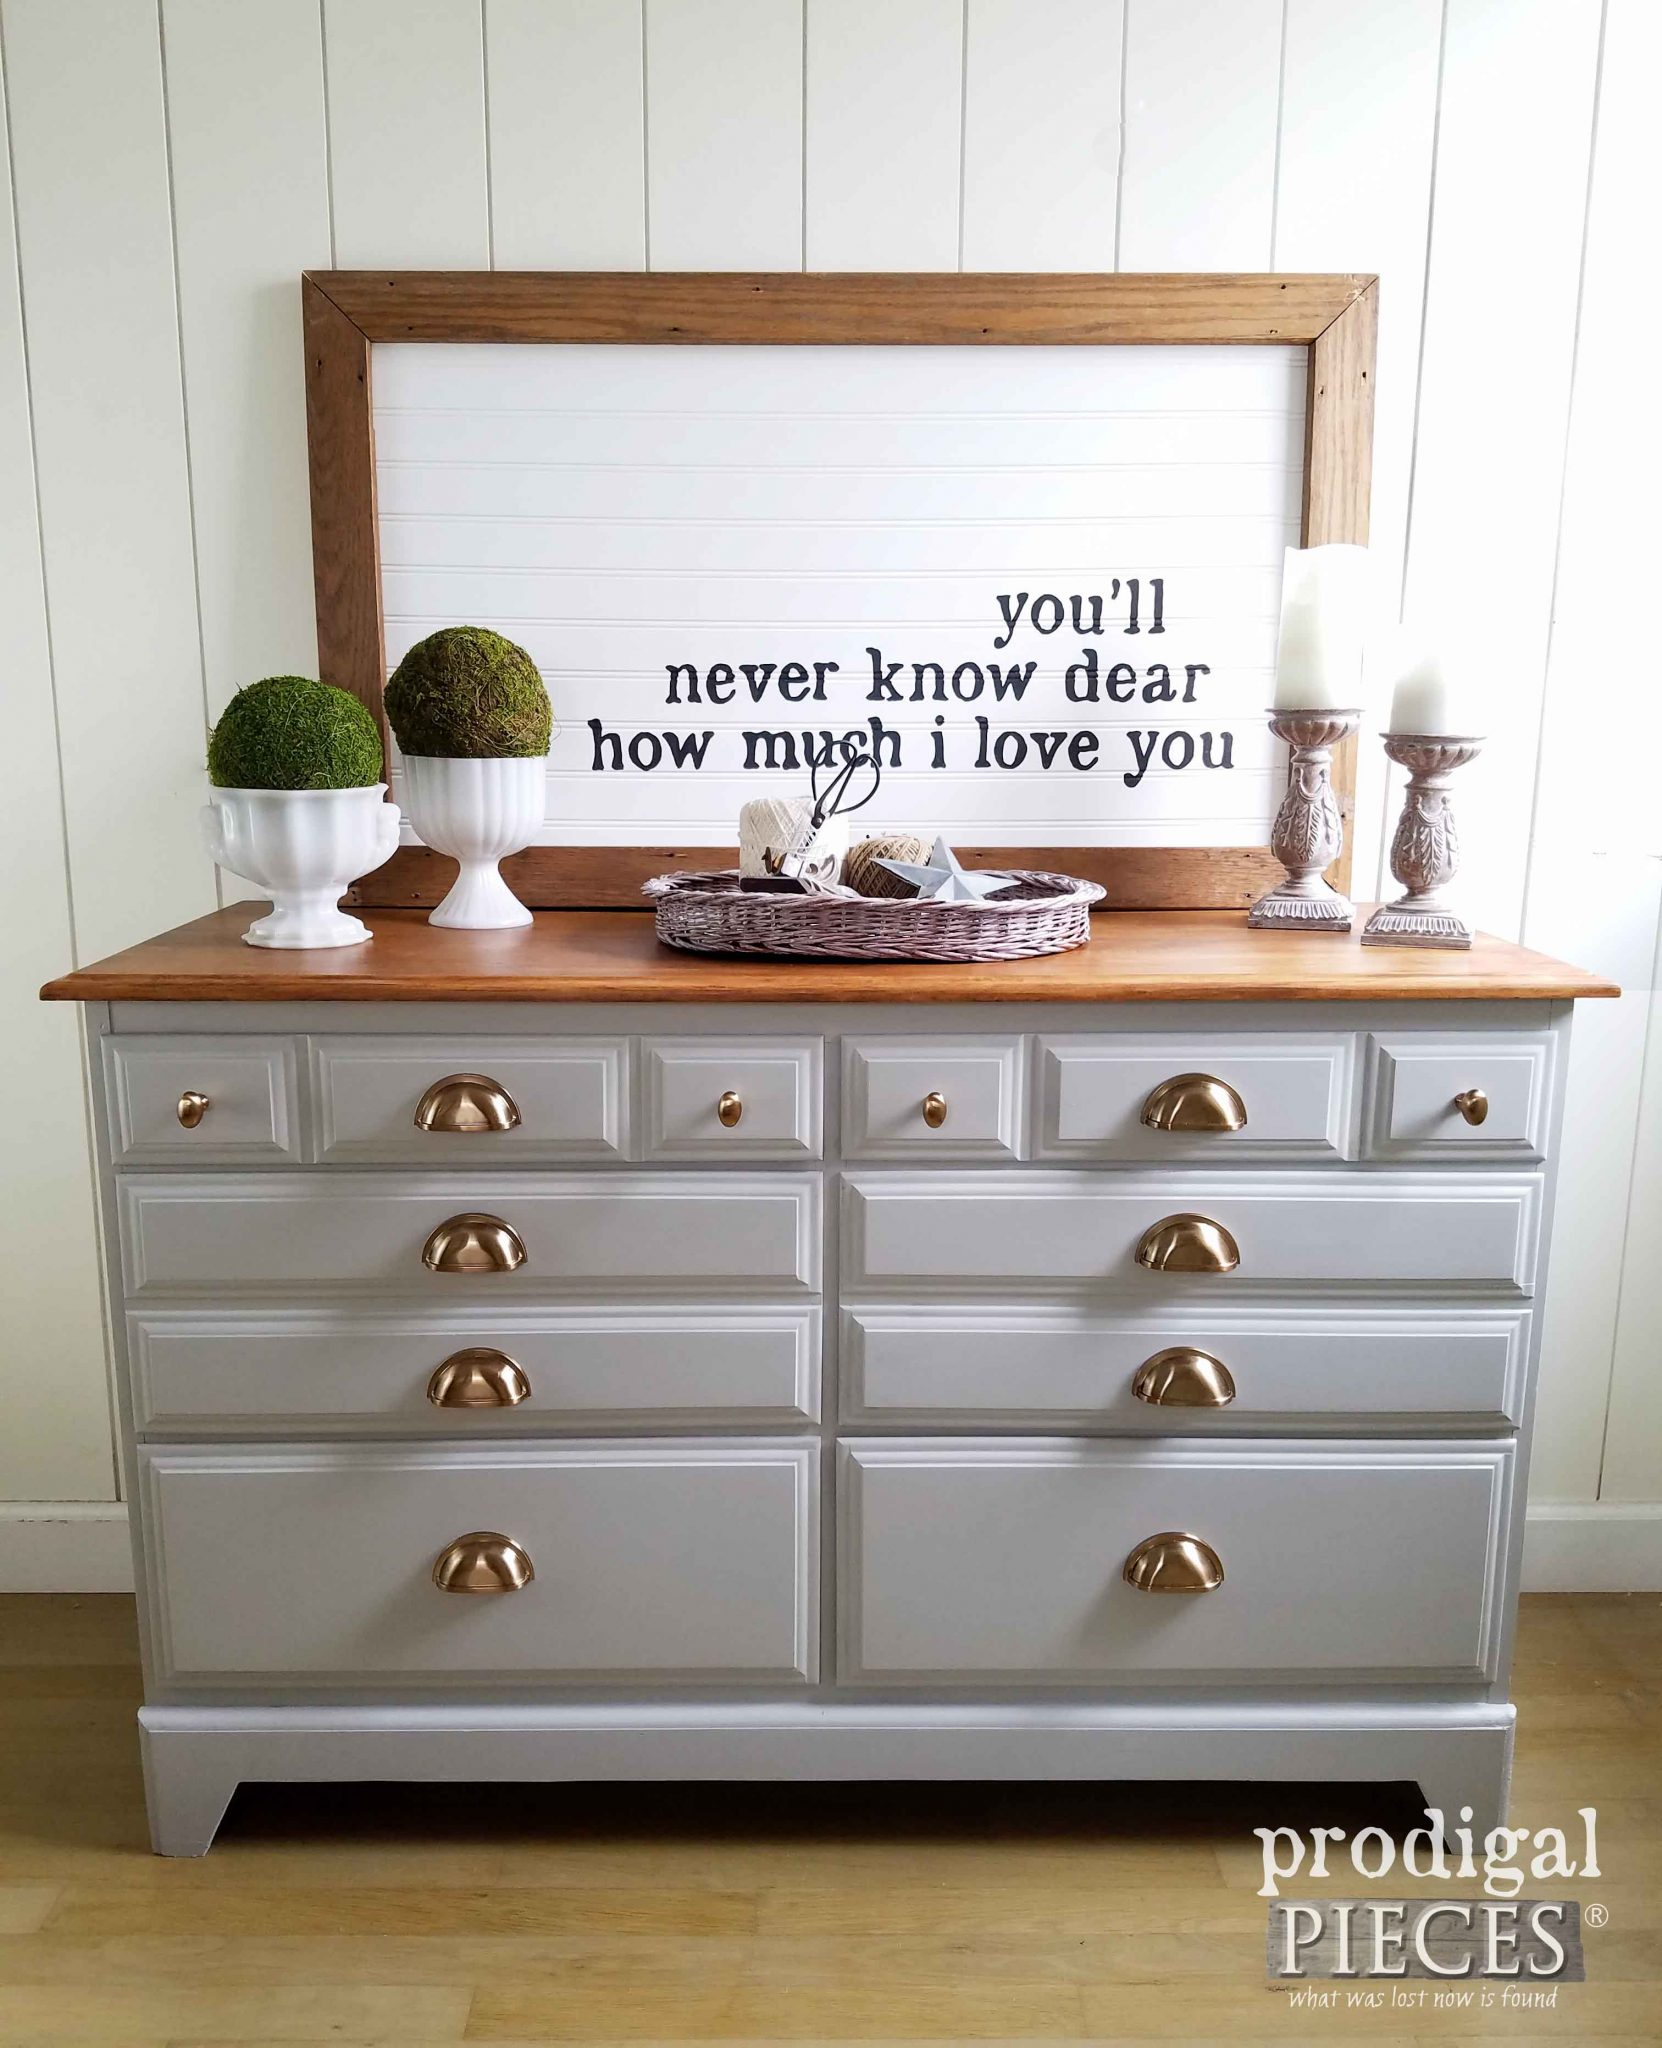 Vintage Dresser Gets Modern Farmhouse Makeover by Prodigal Pieces | prodigalpieces.com